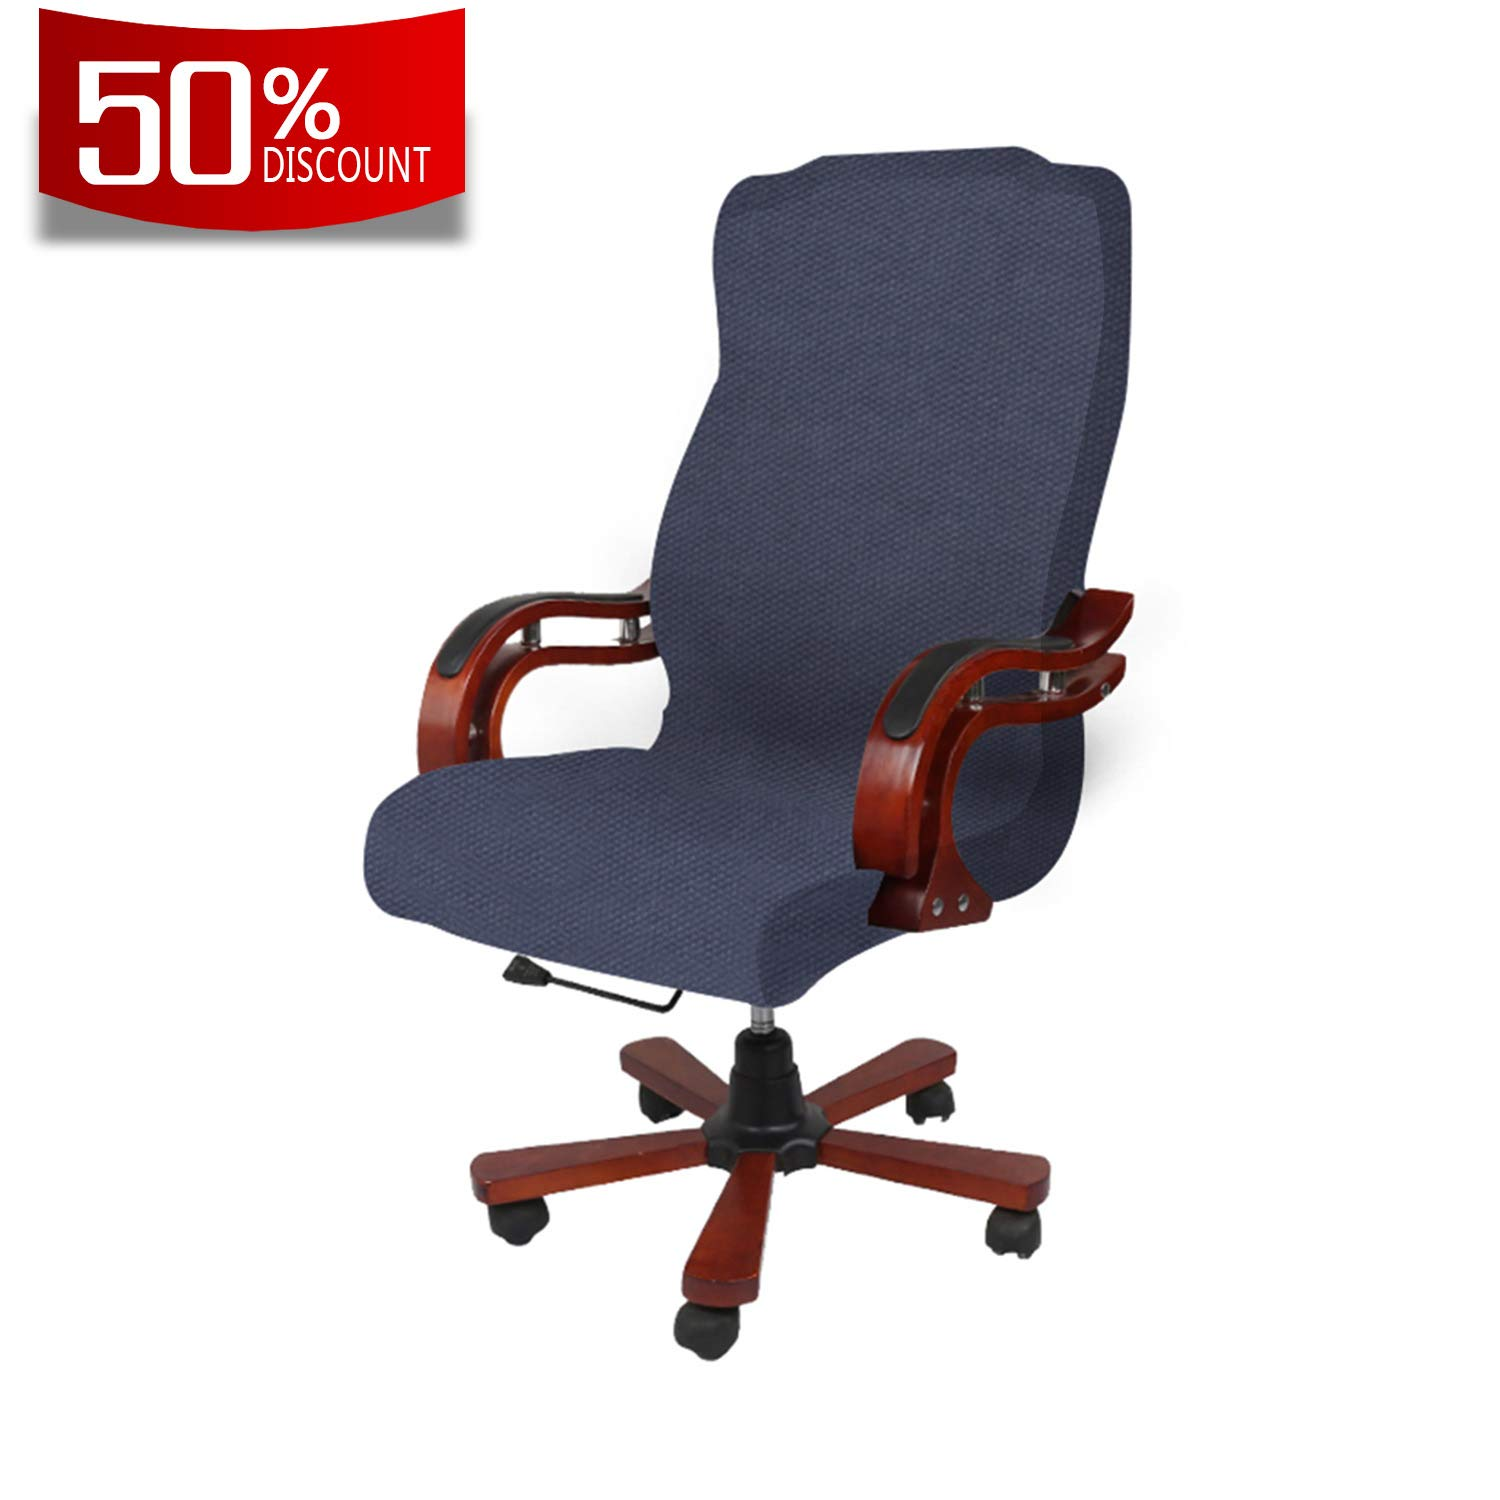 Granbest Office Chair Cover Computer Chair Universal Boss Chair Cover Modern Jacquard Style High Back Large Size